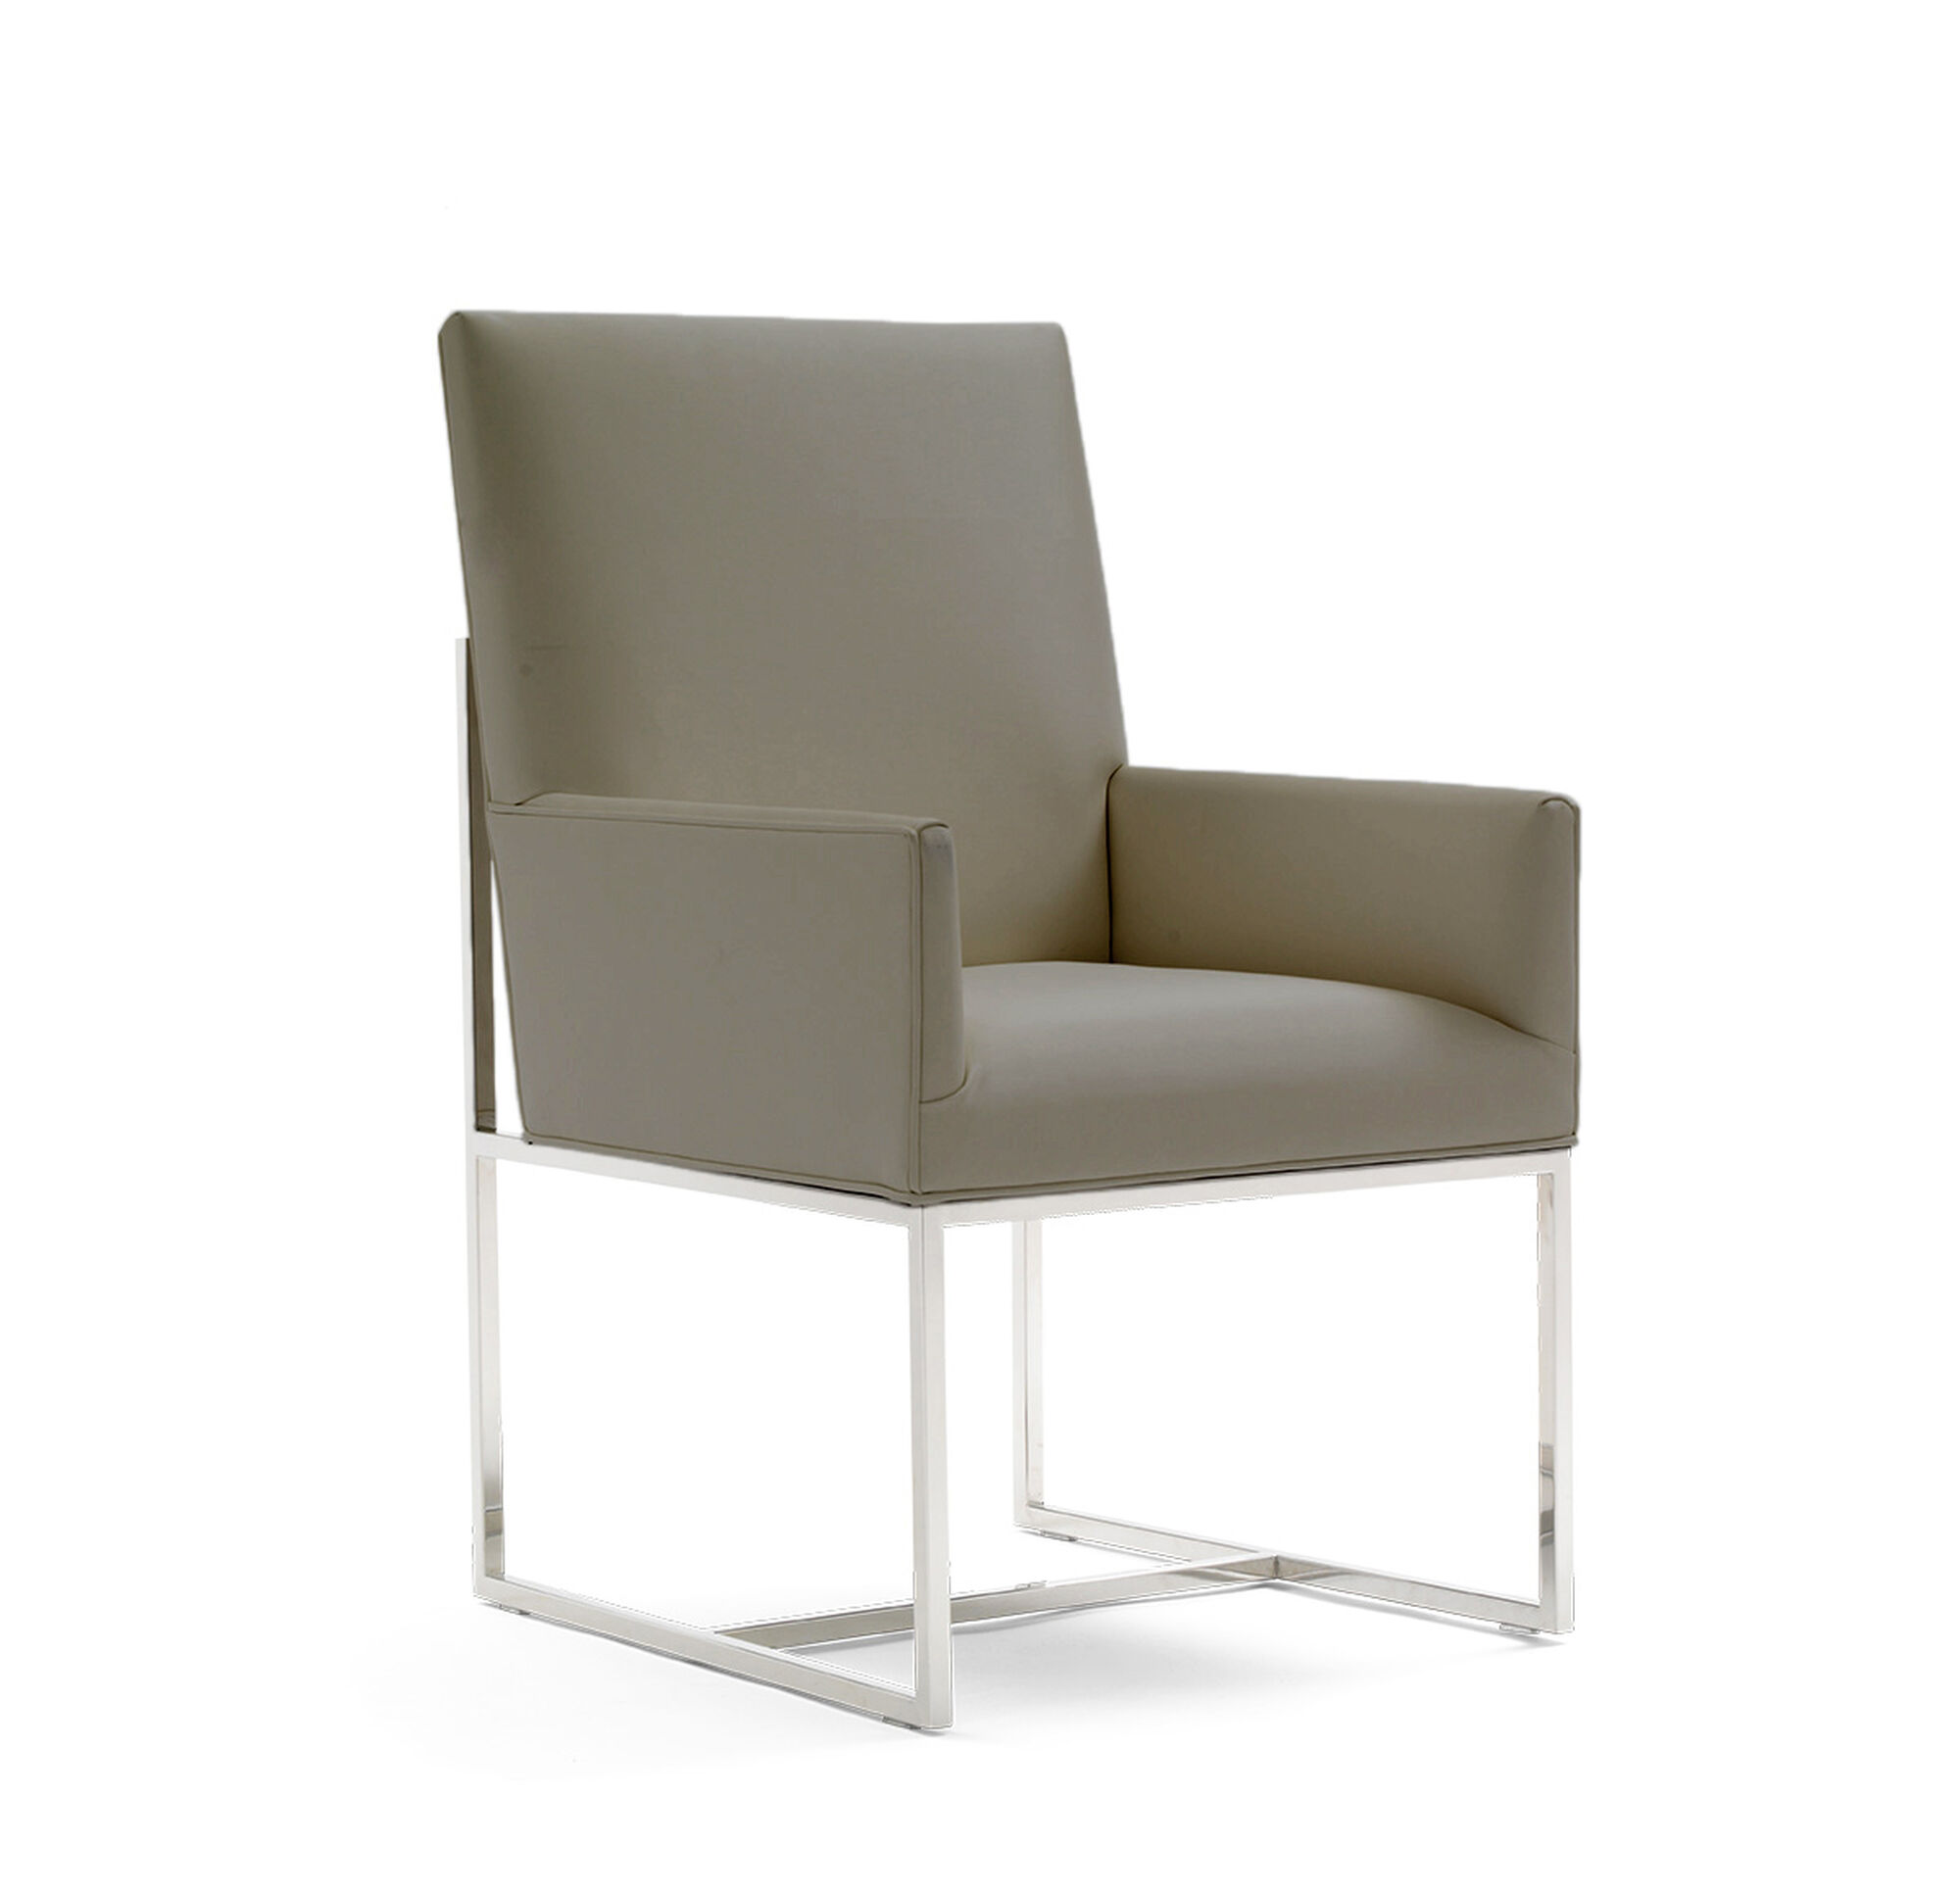 Gage Low Arm Dining Chair Hi Res